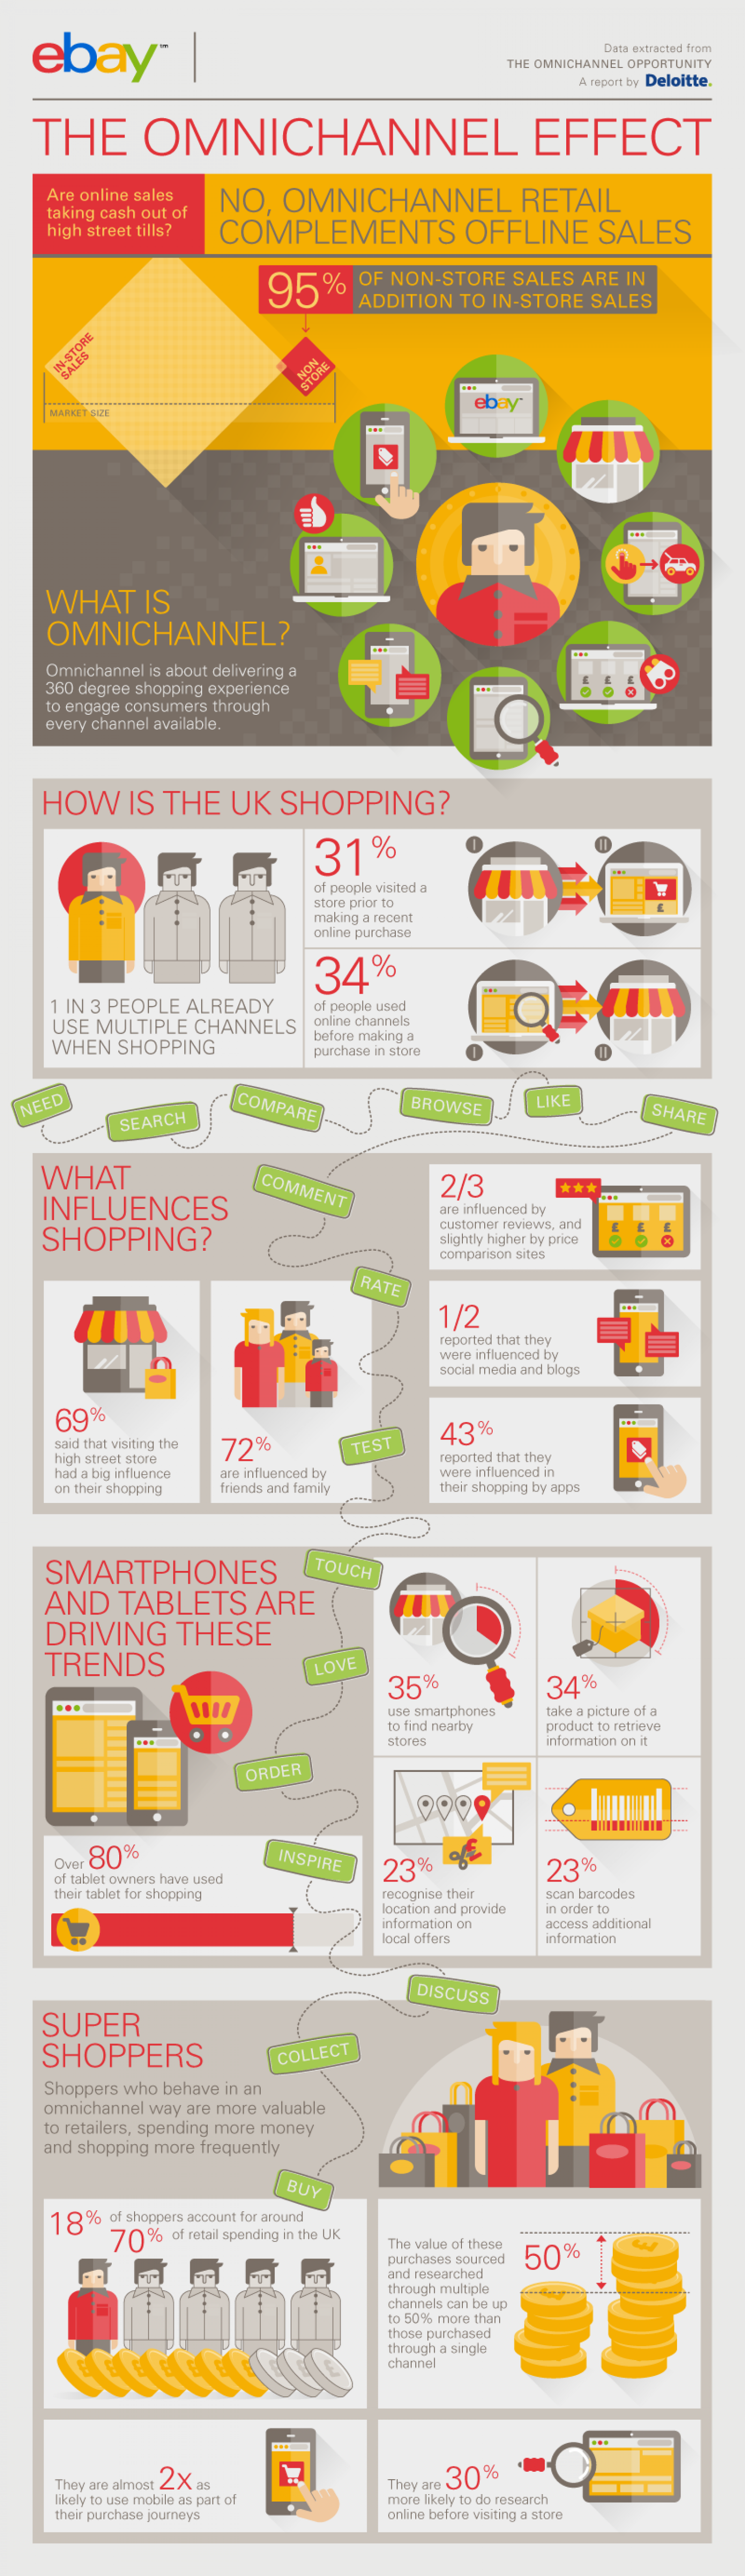 The Omnichannel Effect Infographic